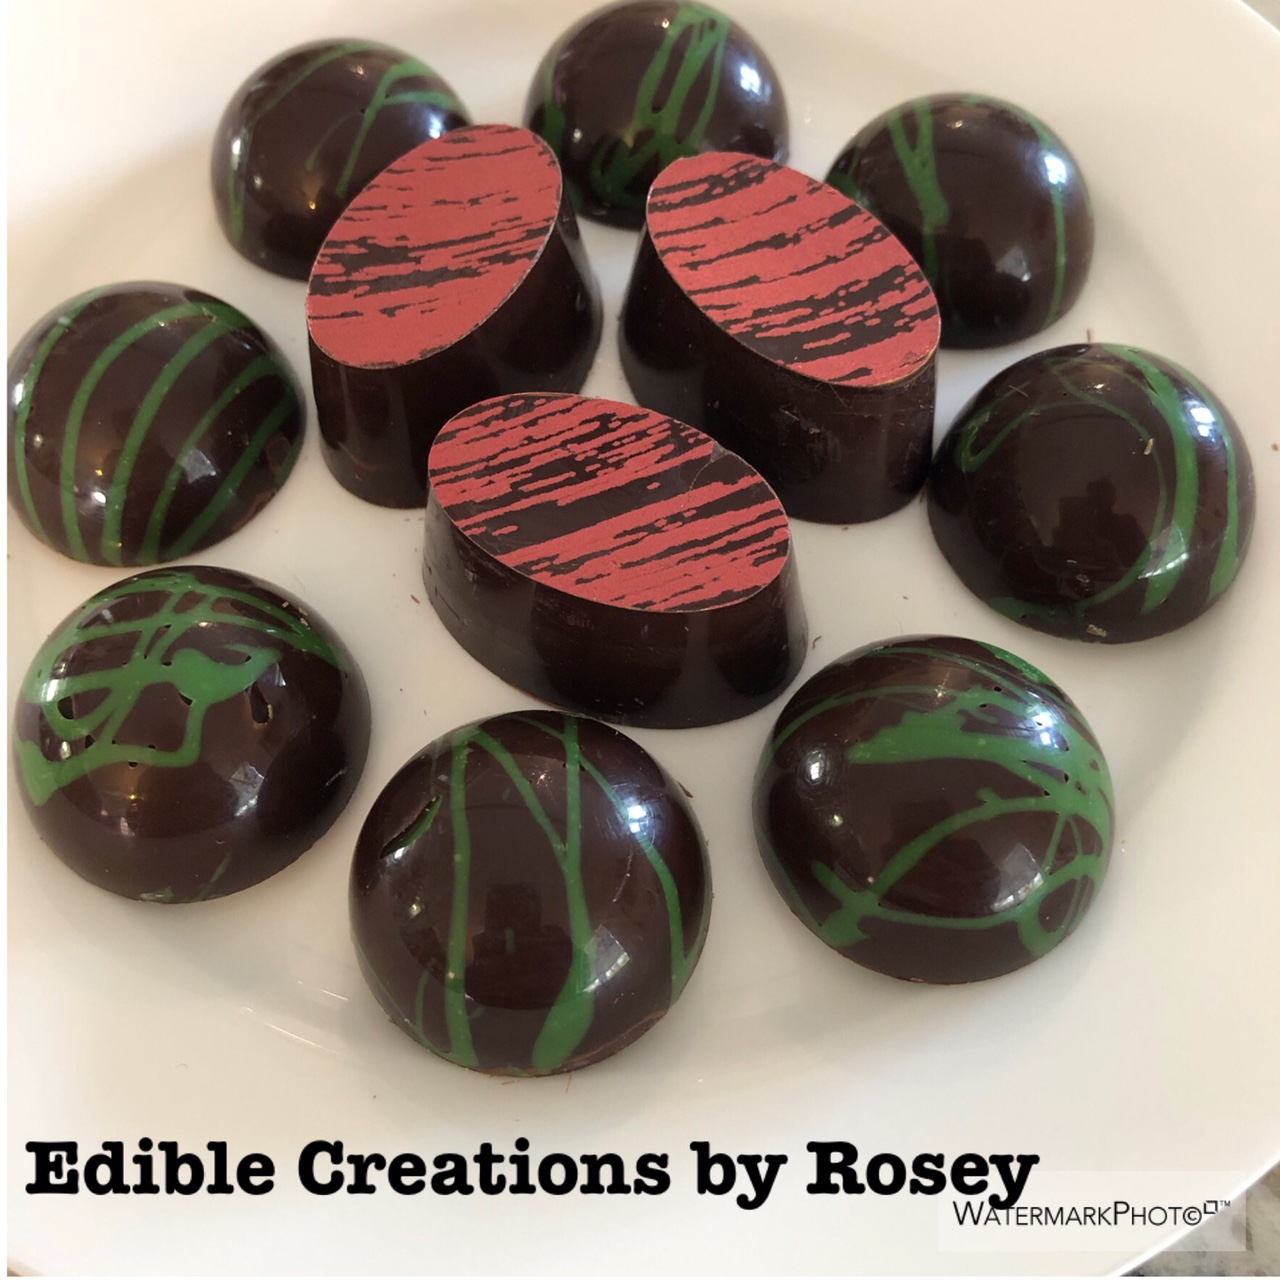 Lime and salted caramel chocolates